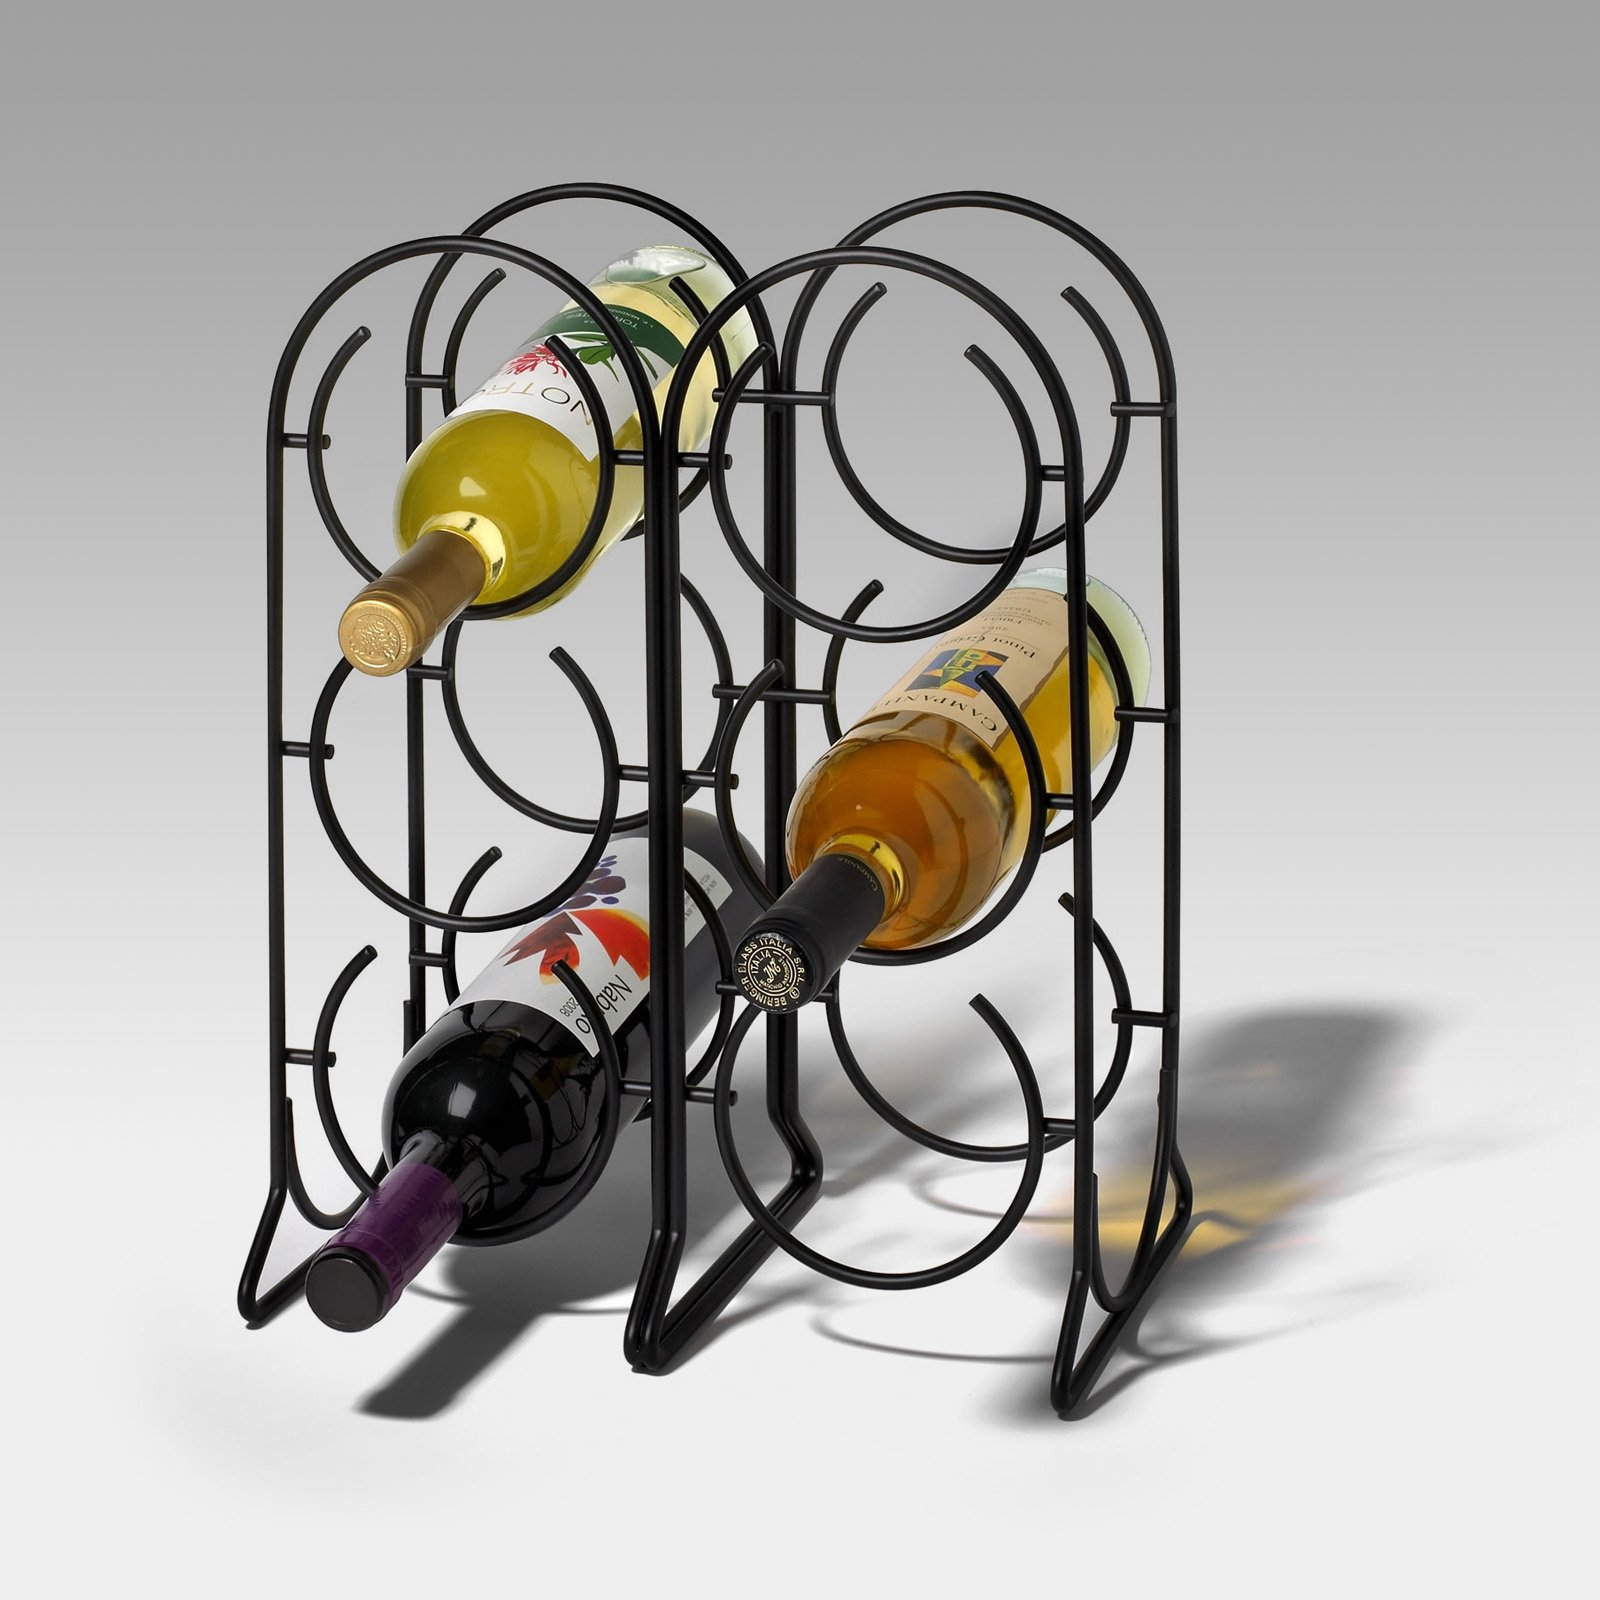 Spectrum Horseshoe 6-Bottle Wine Rack - Black